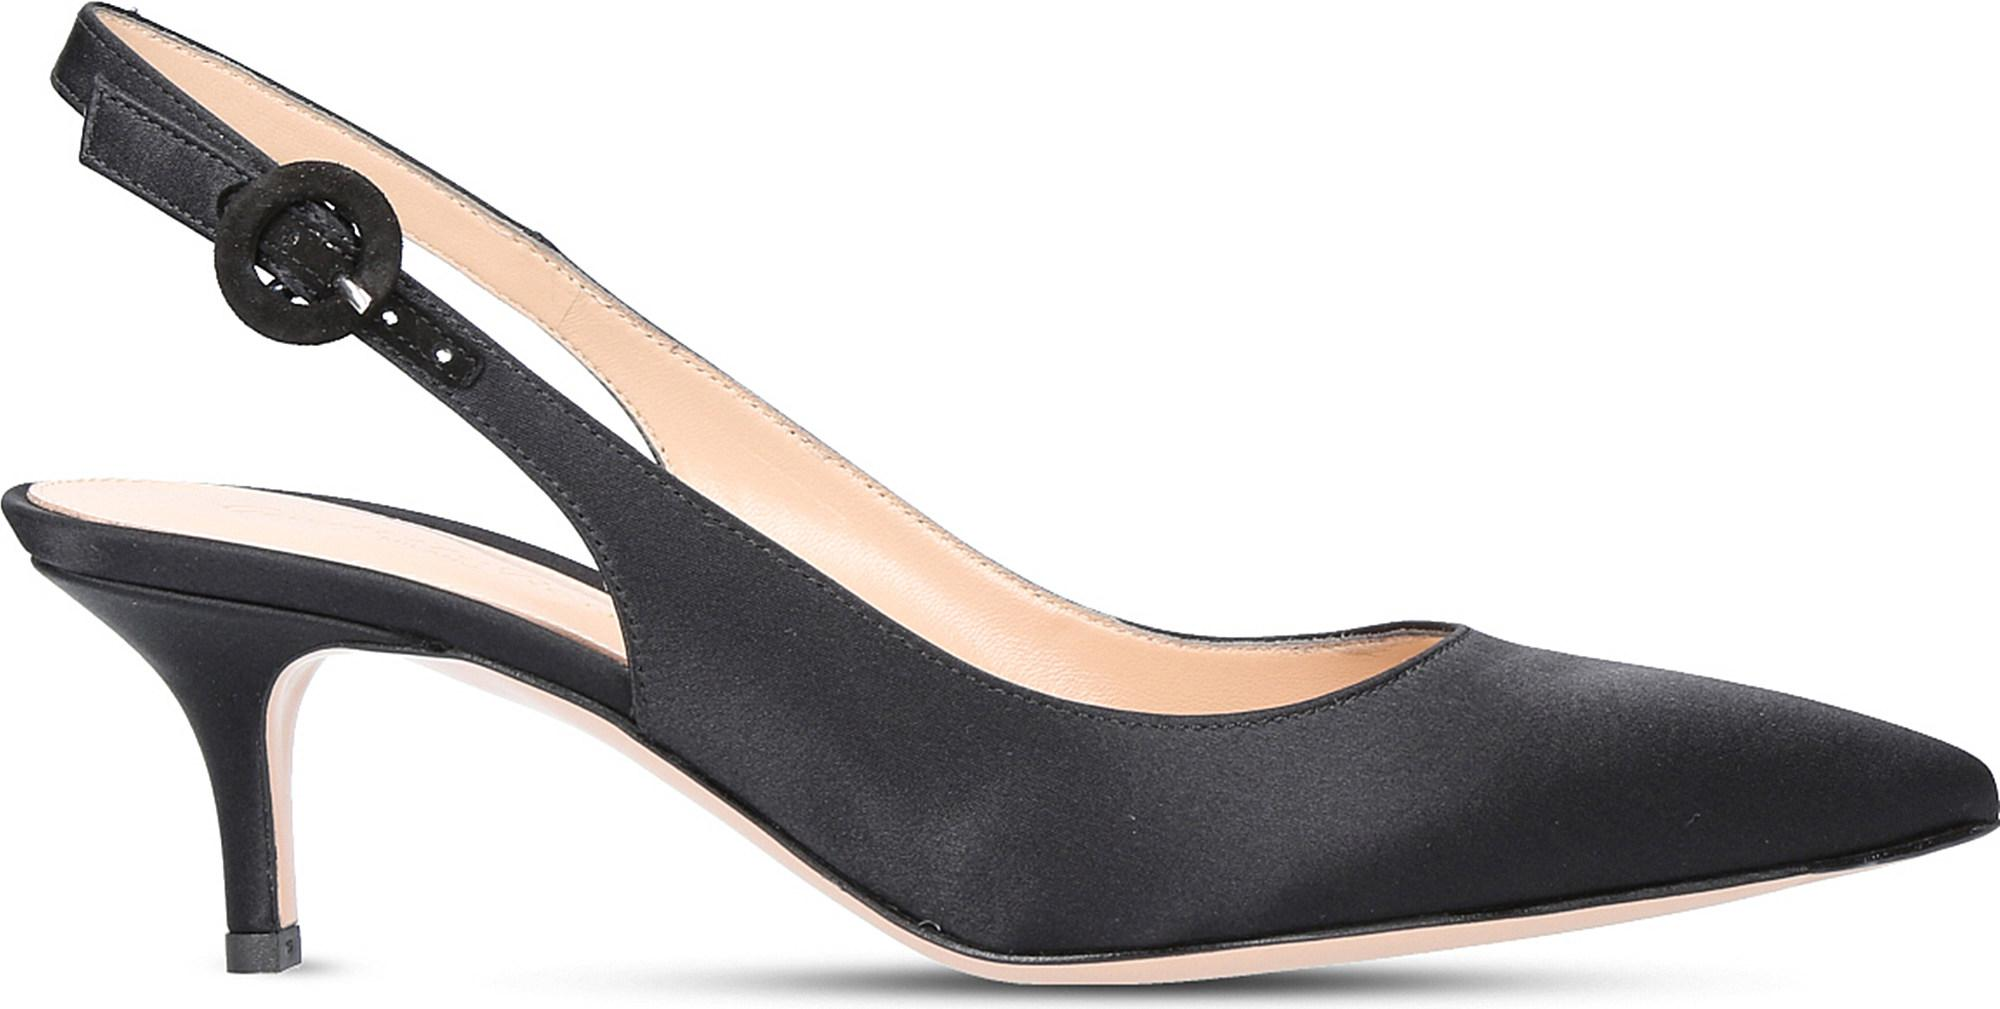 Anna 55 Patent-leather Slingback Pumps - Black Gianvito Rossi For Cheap Cheap Online Free Shipping Amazon Low Shipping Fee Clearance Shop For Find Great Sale Online 9o3zt